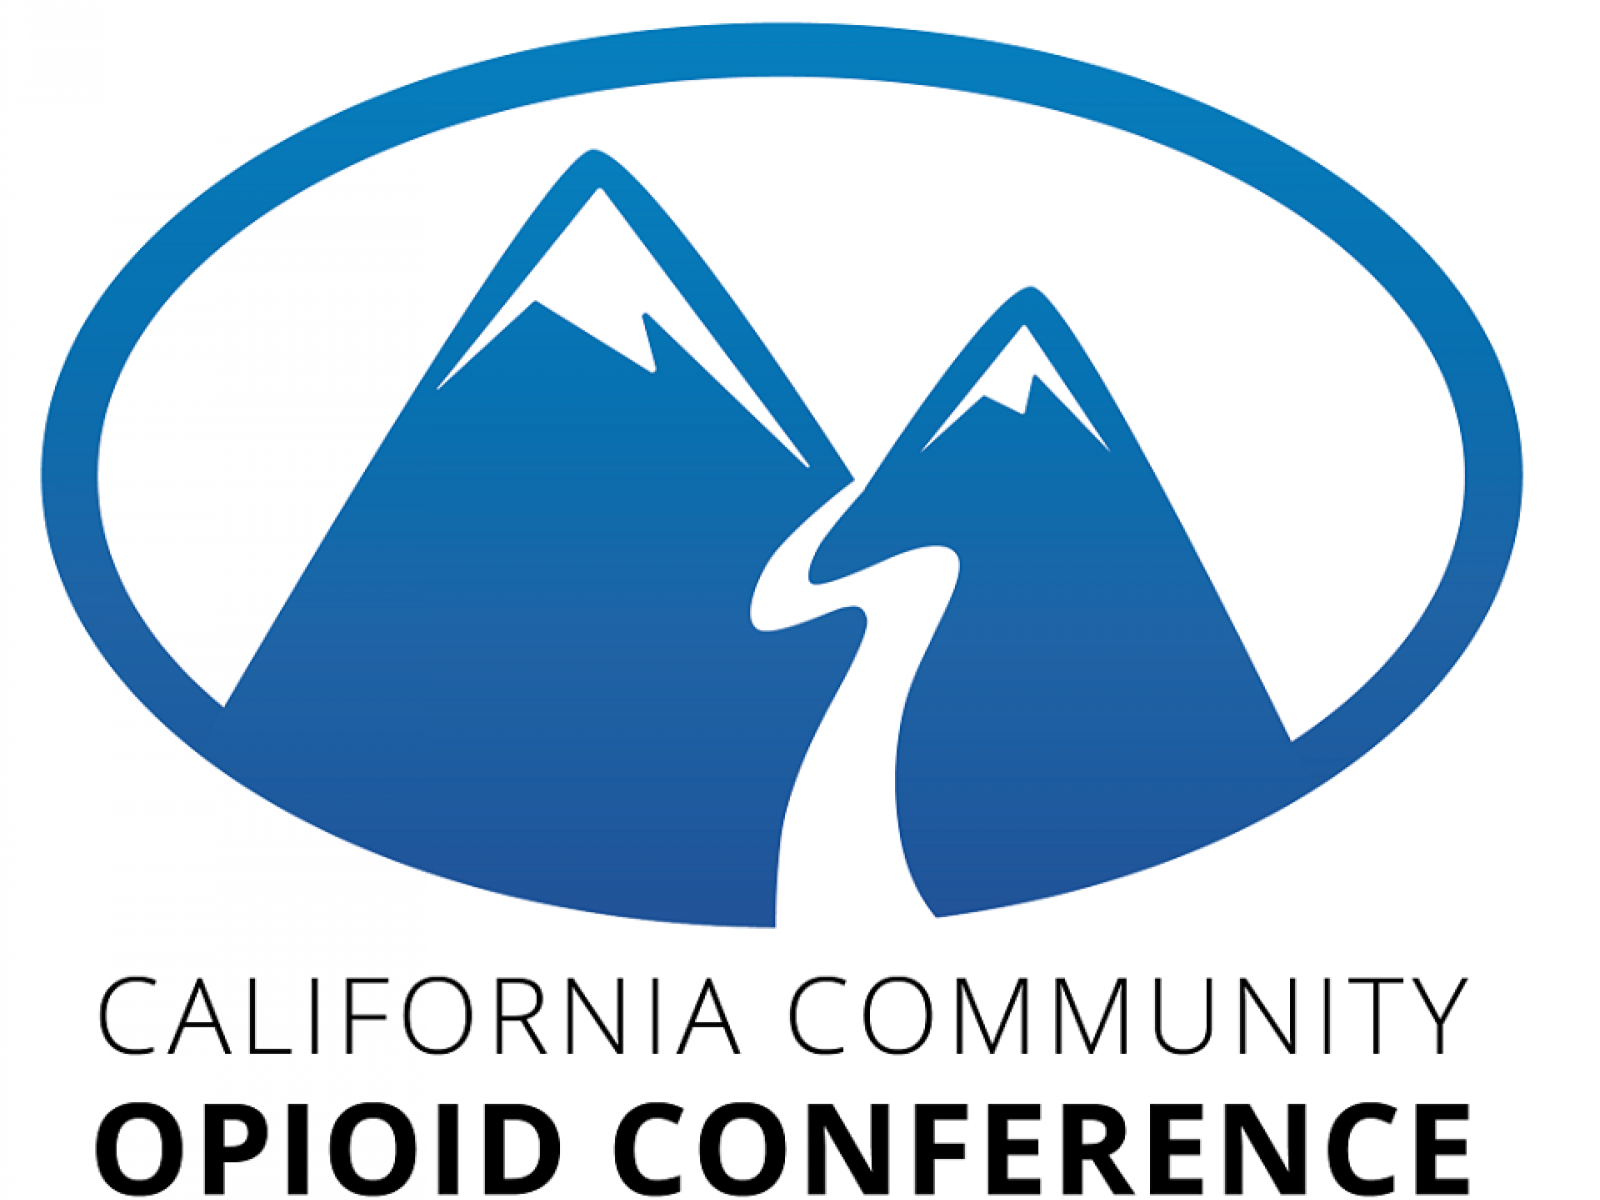 California Community Opioid Conference